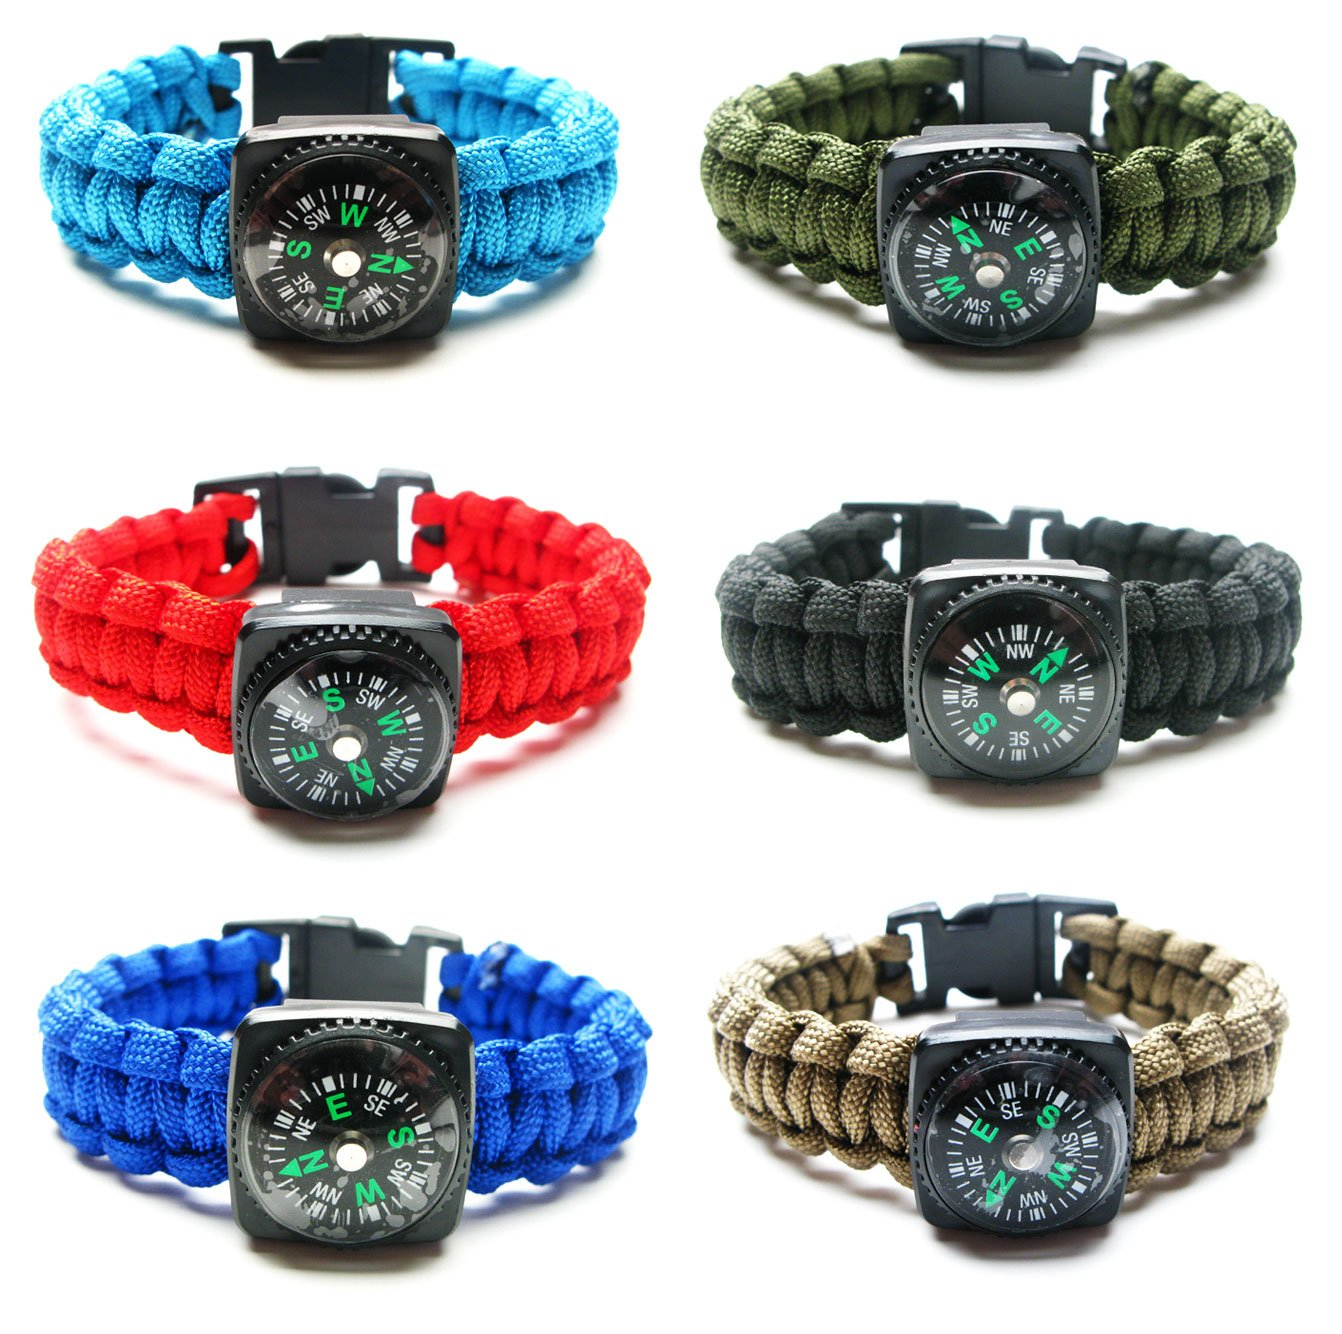 Compass Paracord Bracelet Set for Men Teen Boys 6 Pack-Solid Survival Emergency Tactical Bracelets Braided with 550 lbs Parachute Cord and Mini Compasses - Men's Outdoor Accessories-Camp Party Favors